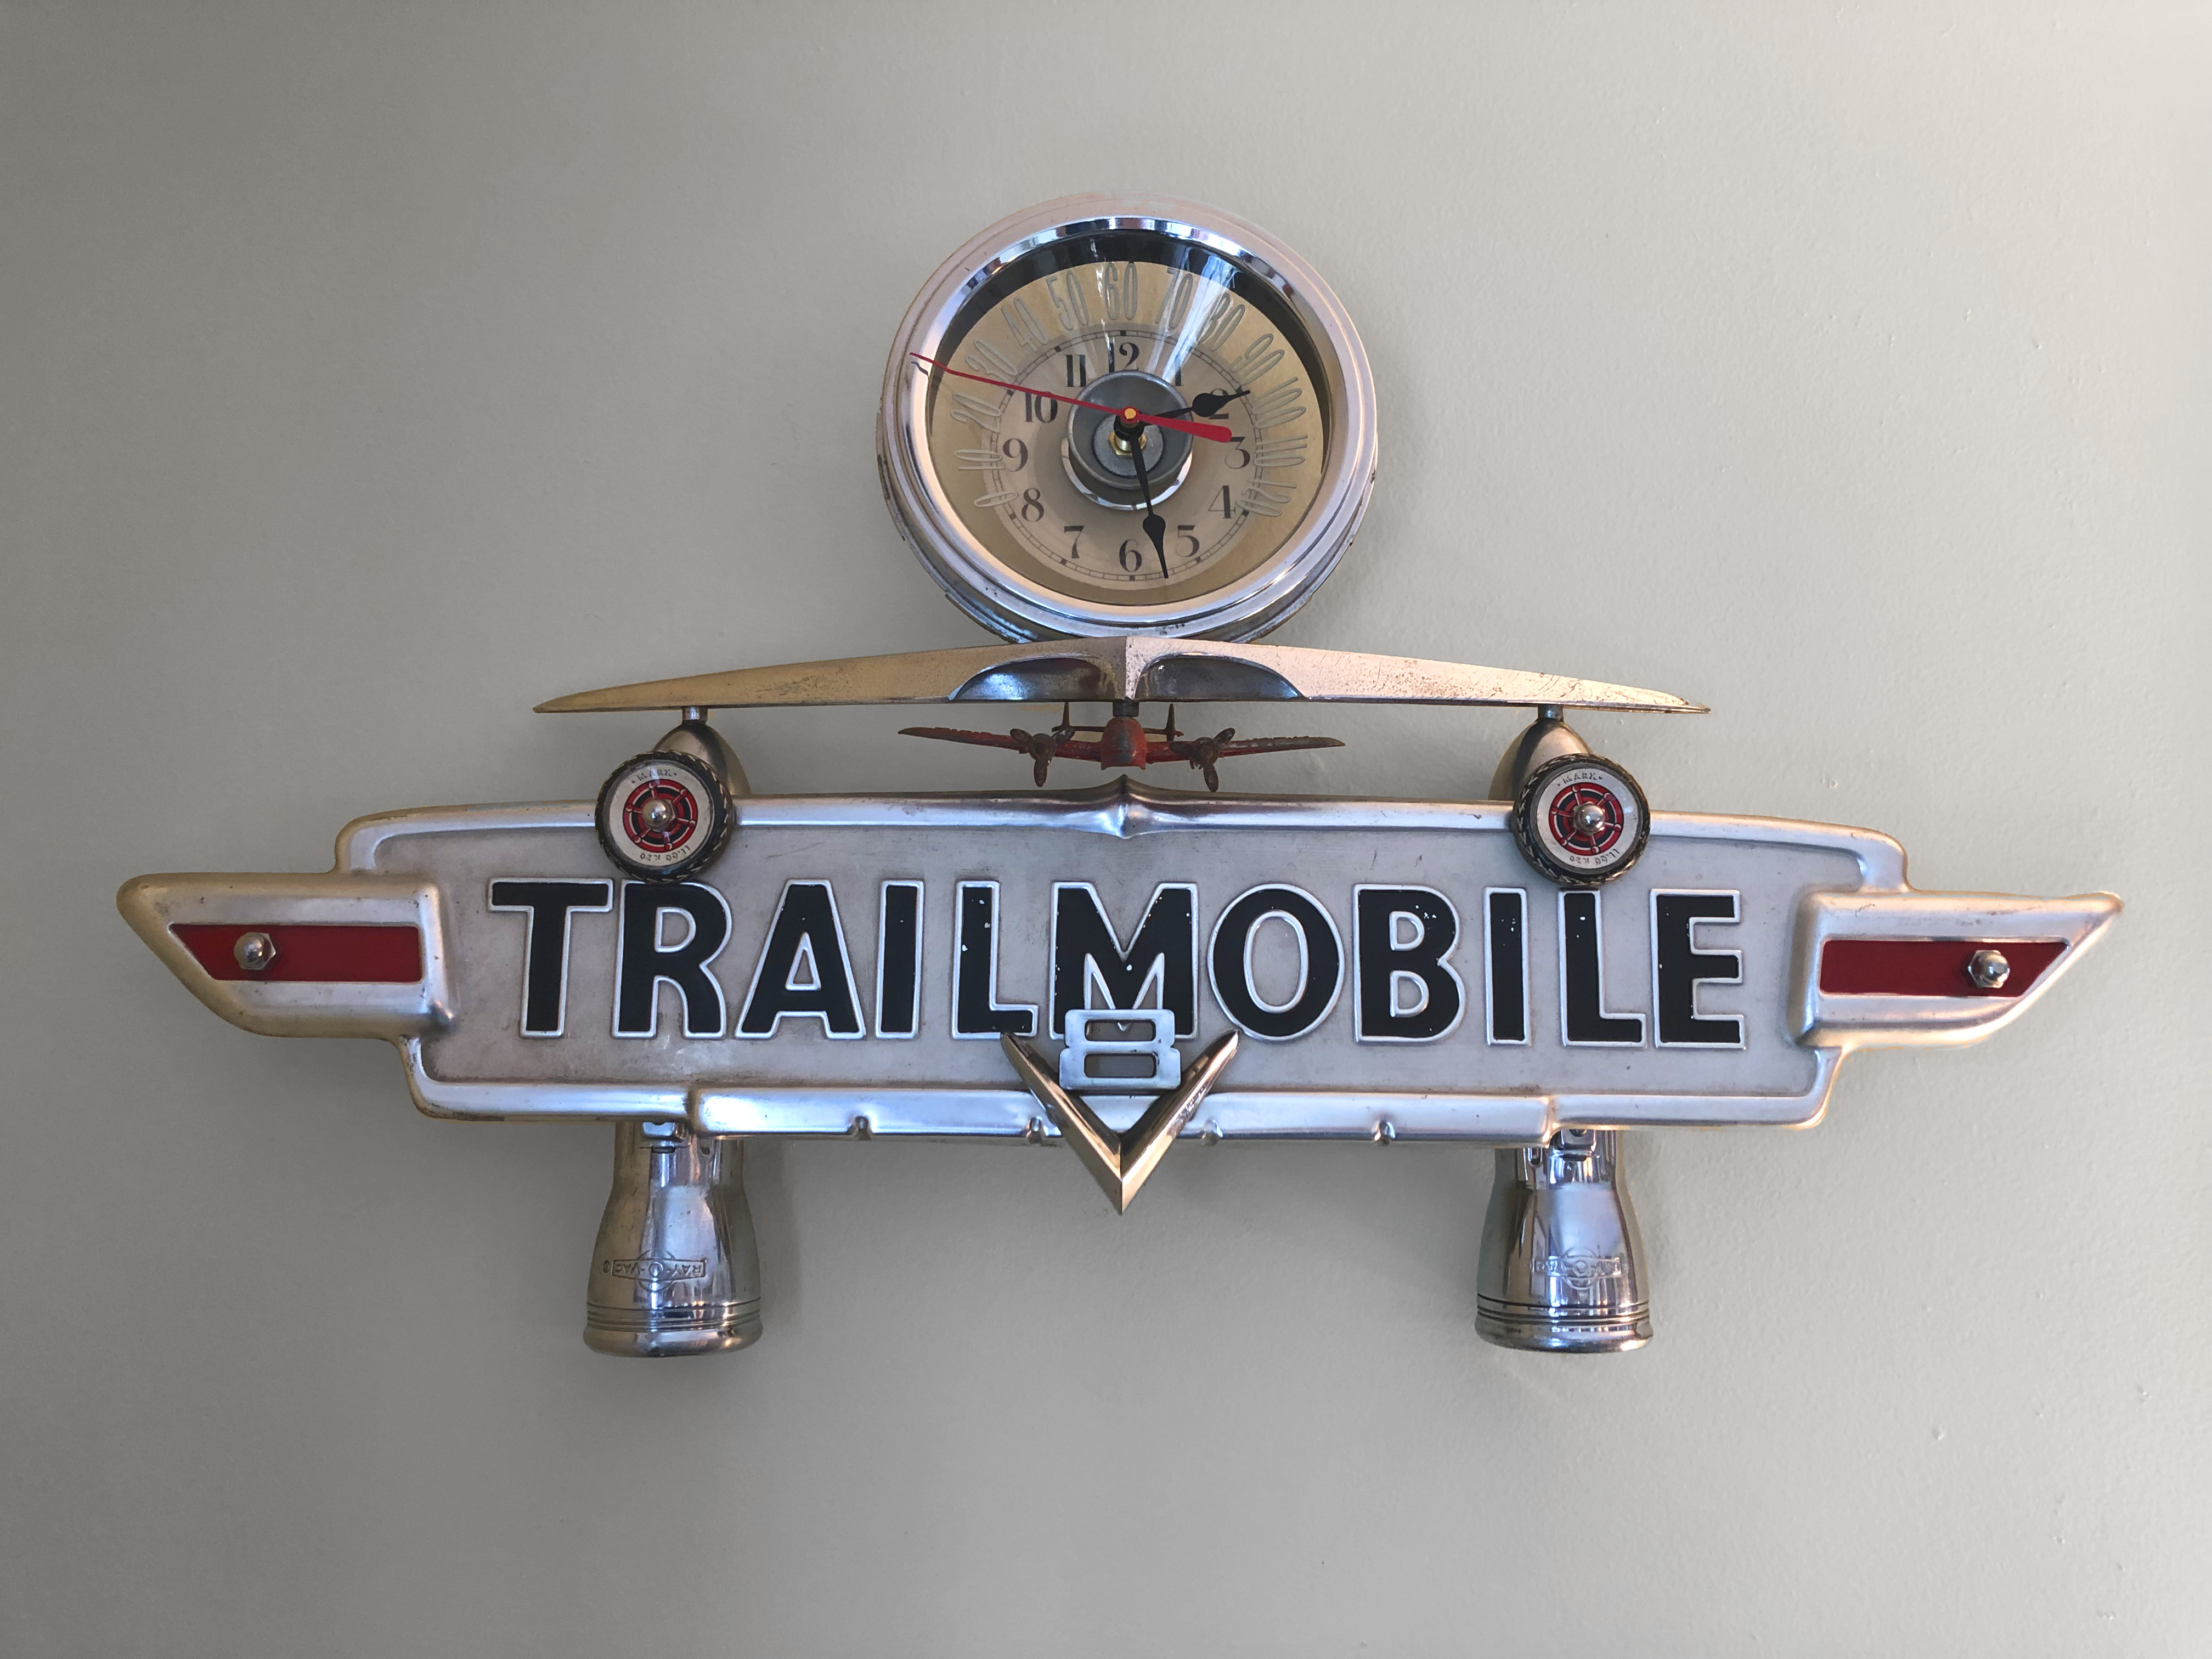 Trailmobile no. 0203